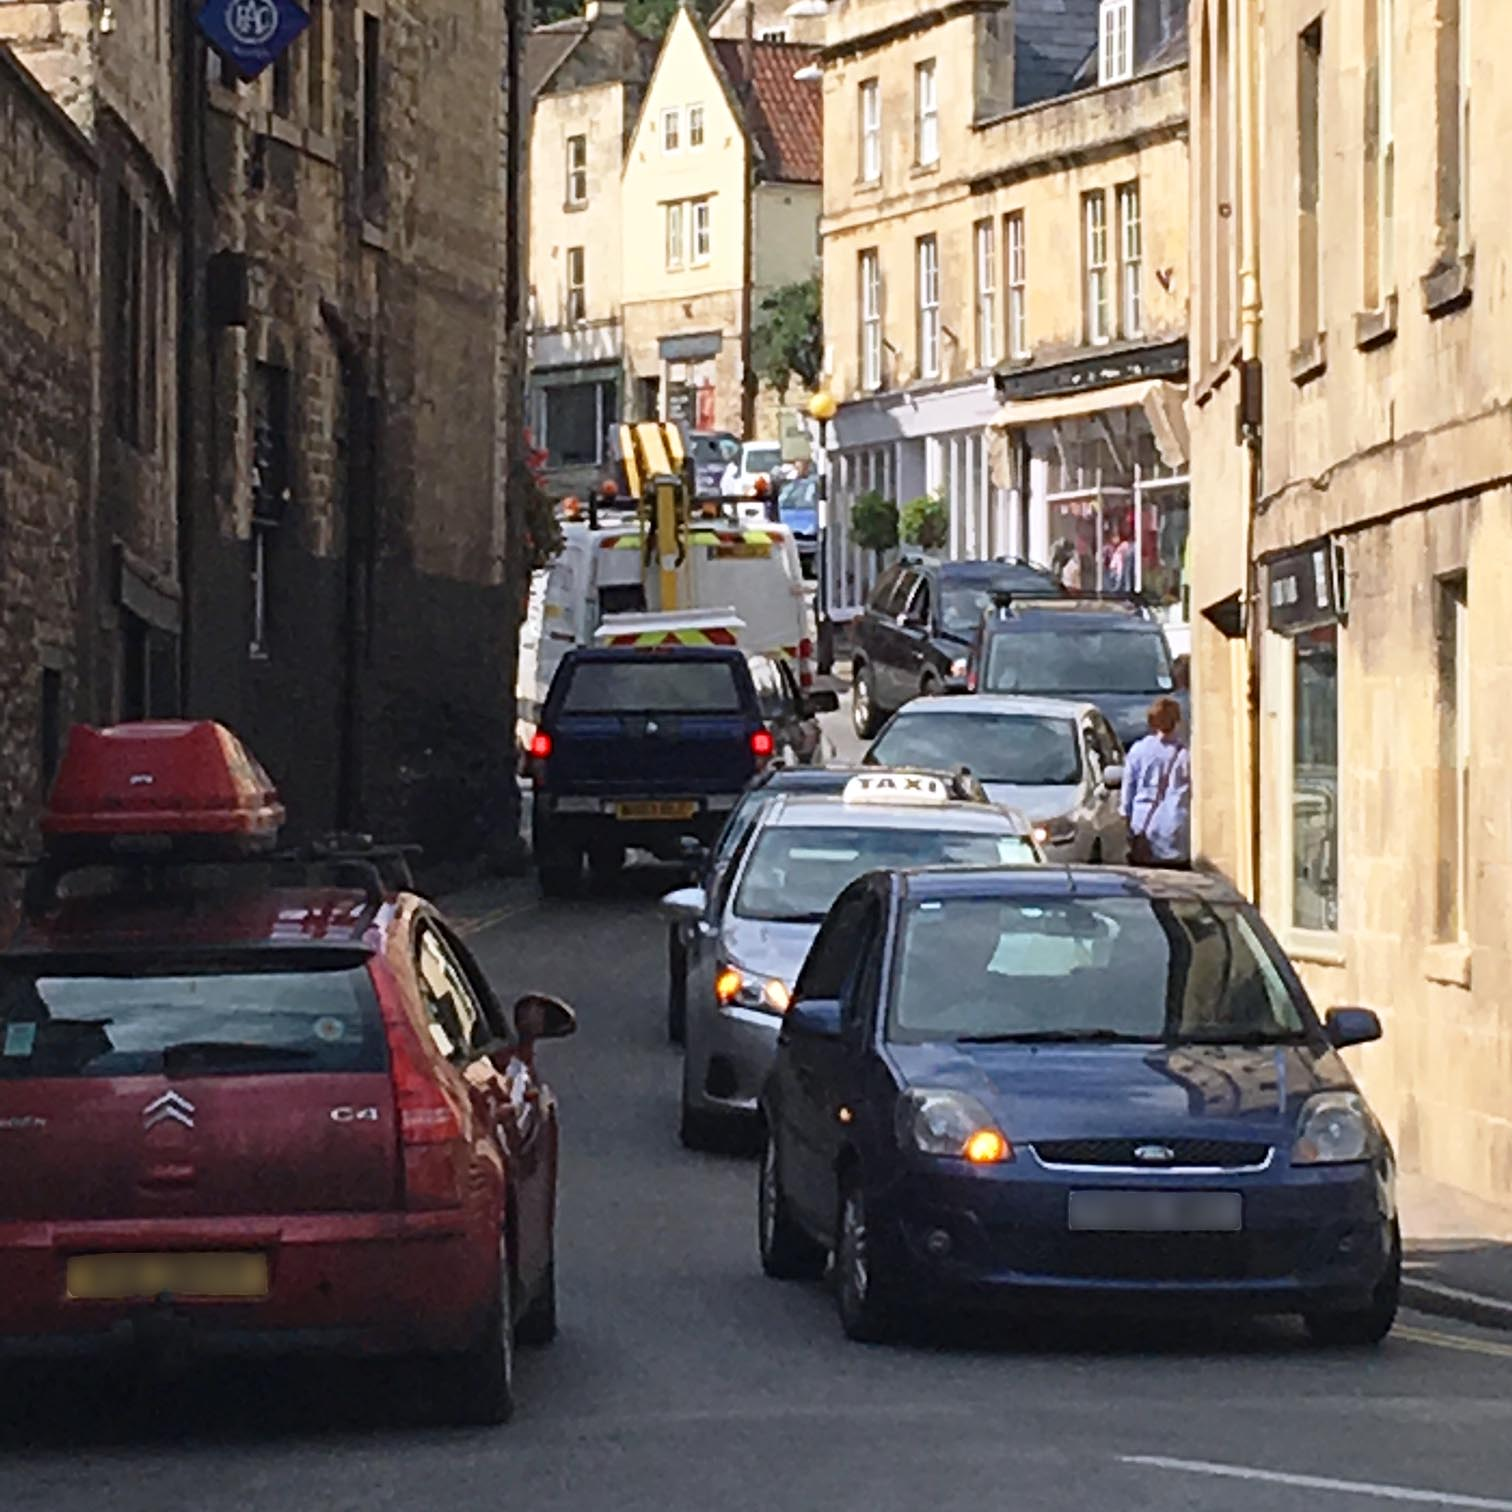 Slow moving traffic in the centre of Bradford on Avon